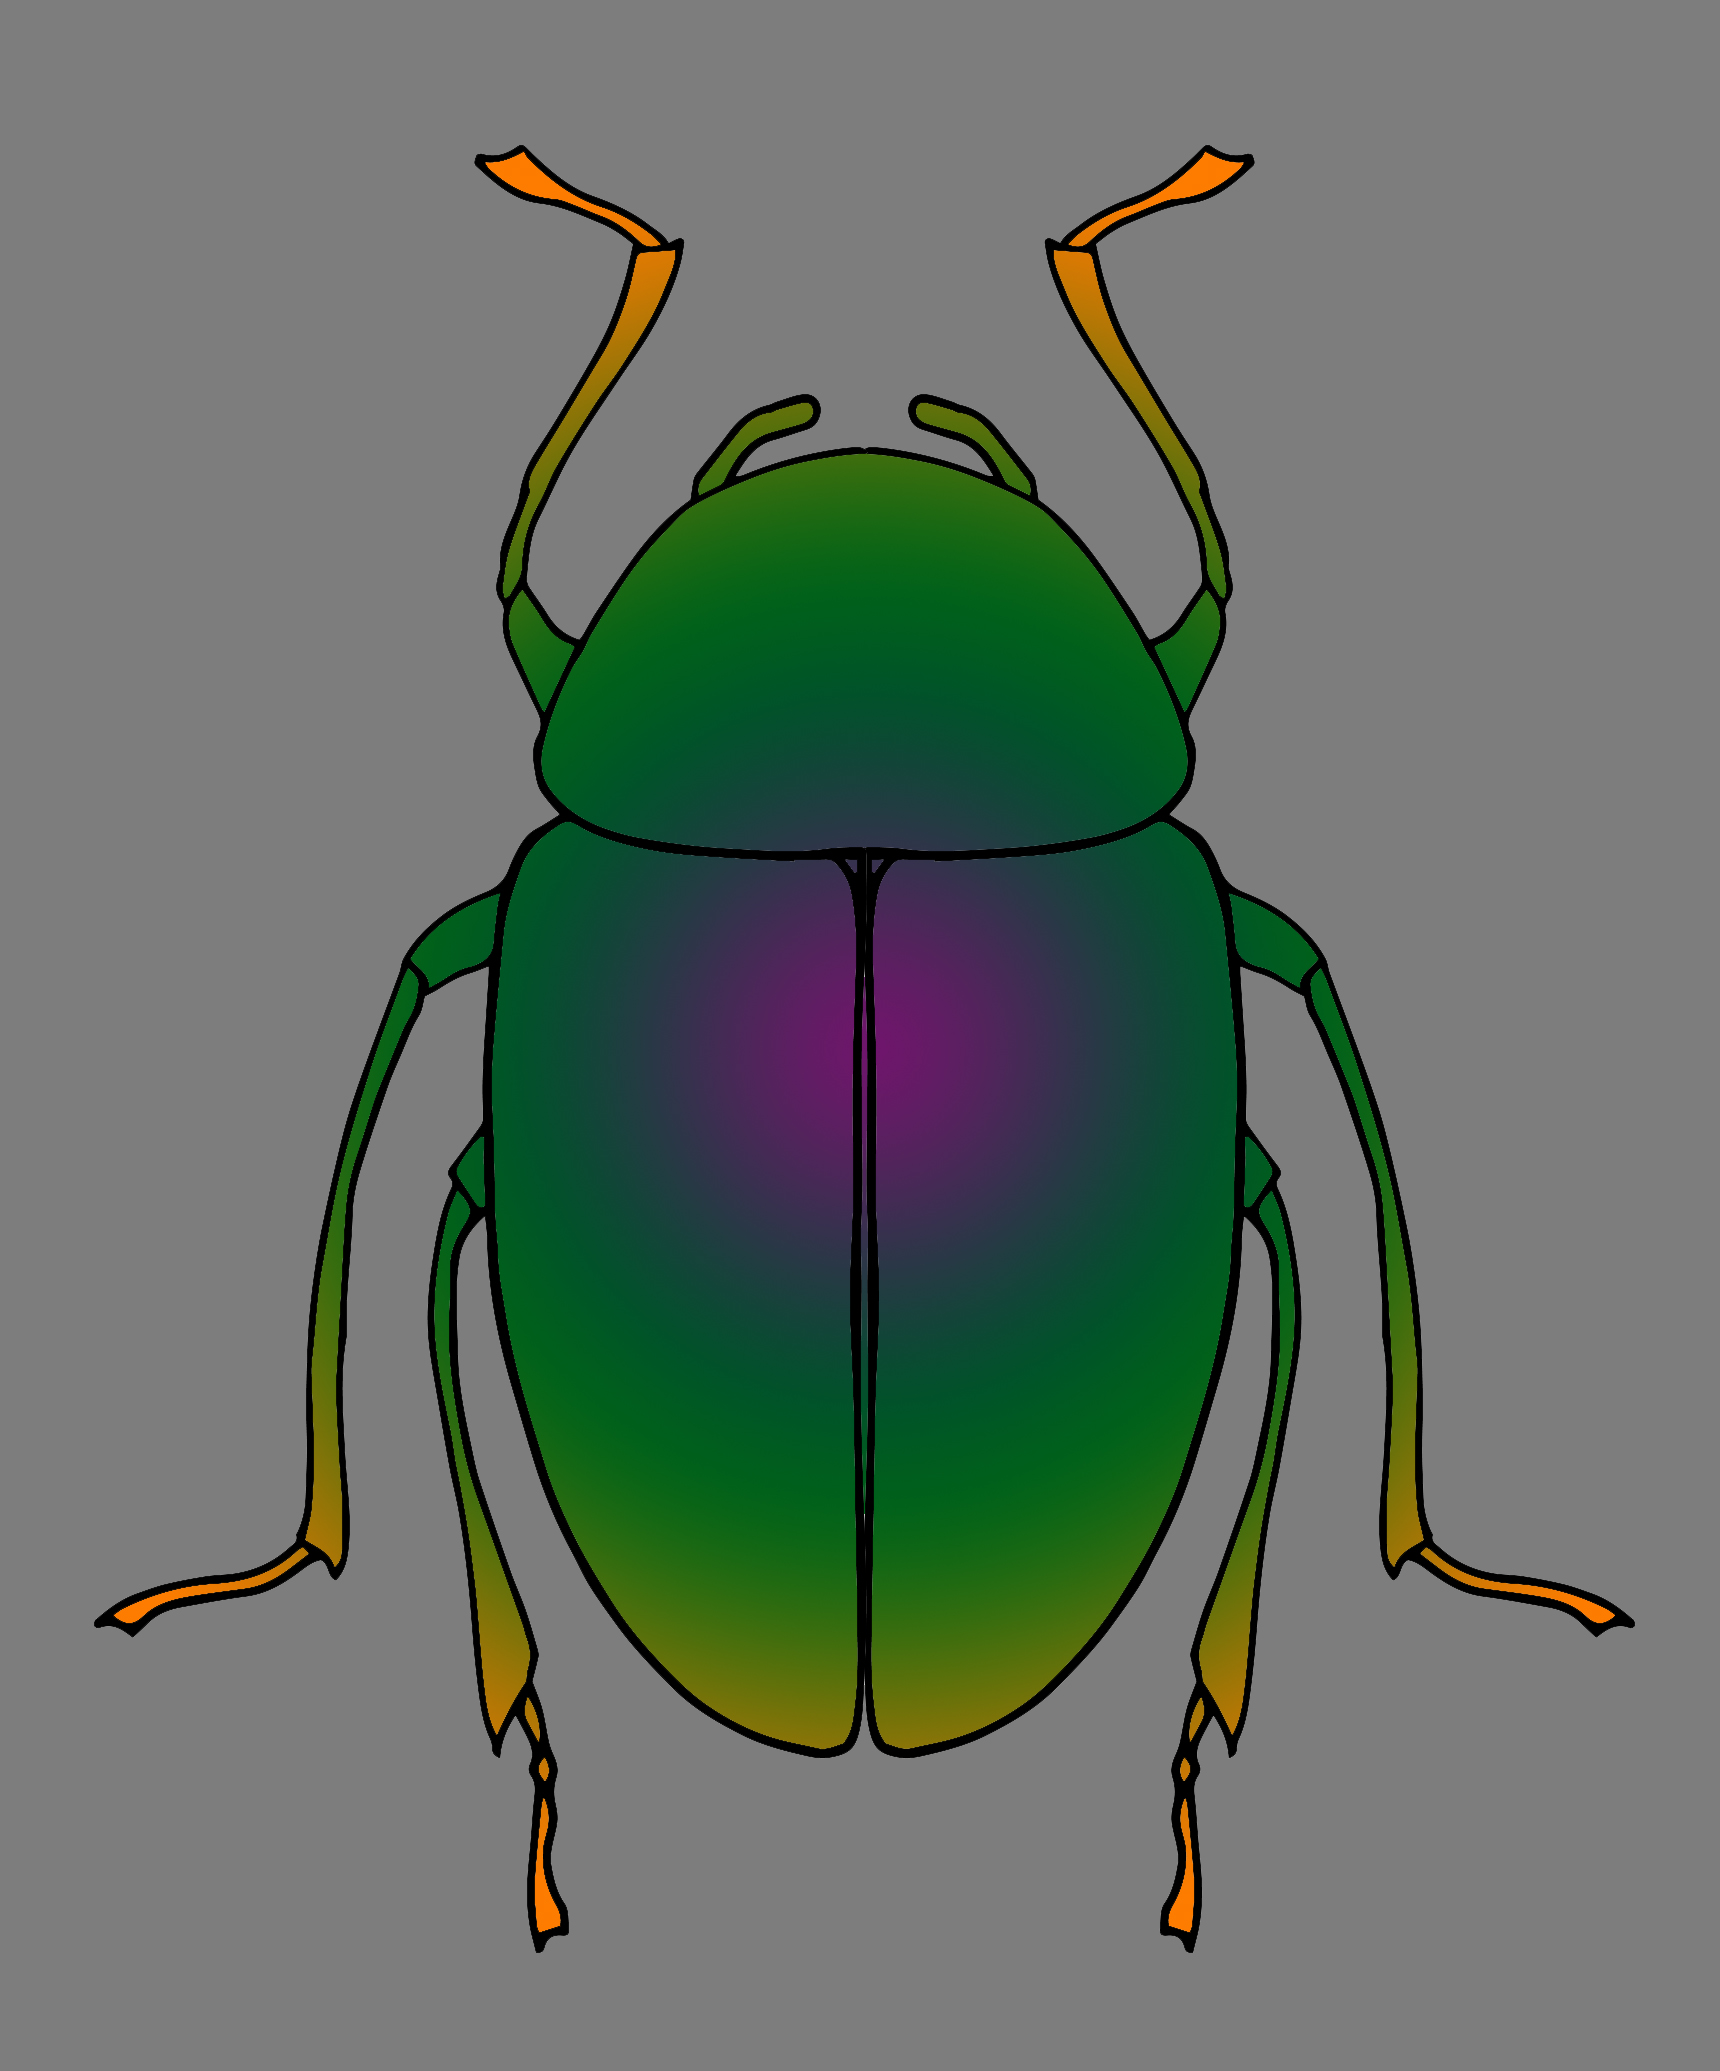 082719 Jeweled Beetle Color 1.jpg